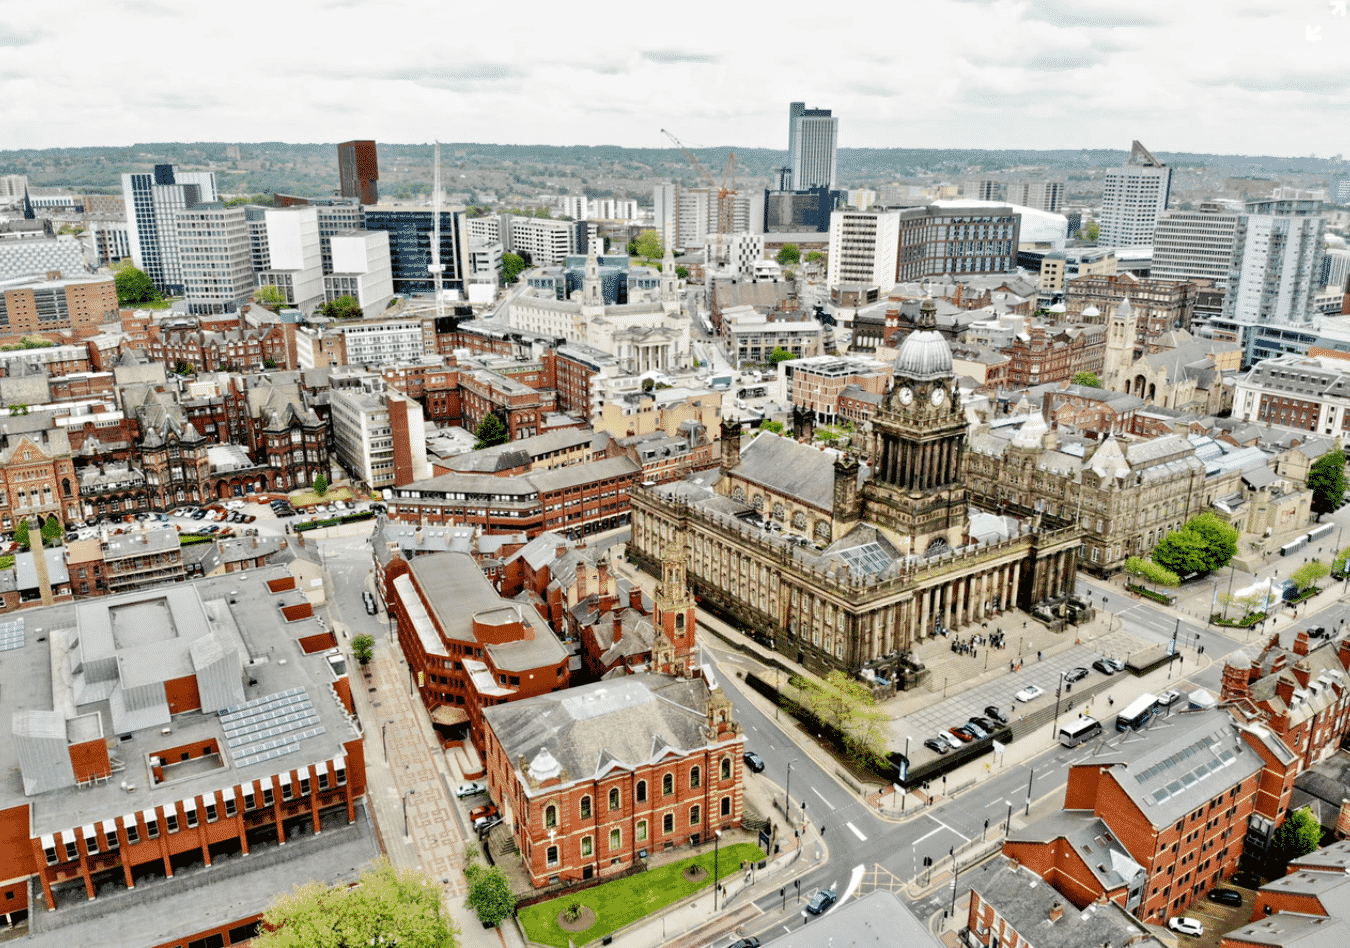 Things to do in Leeds